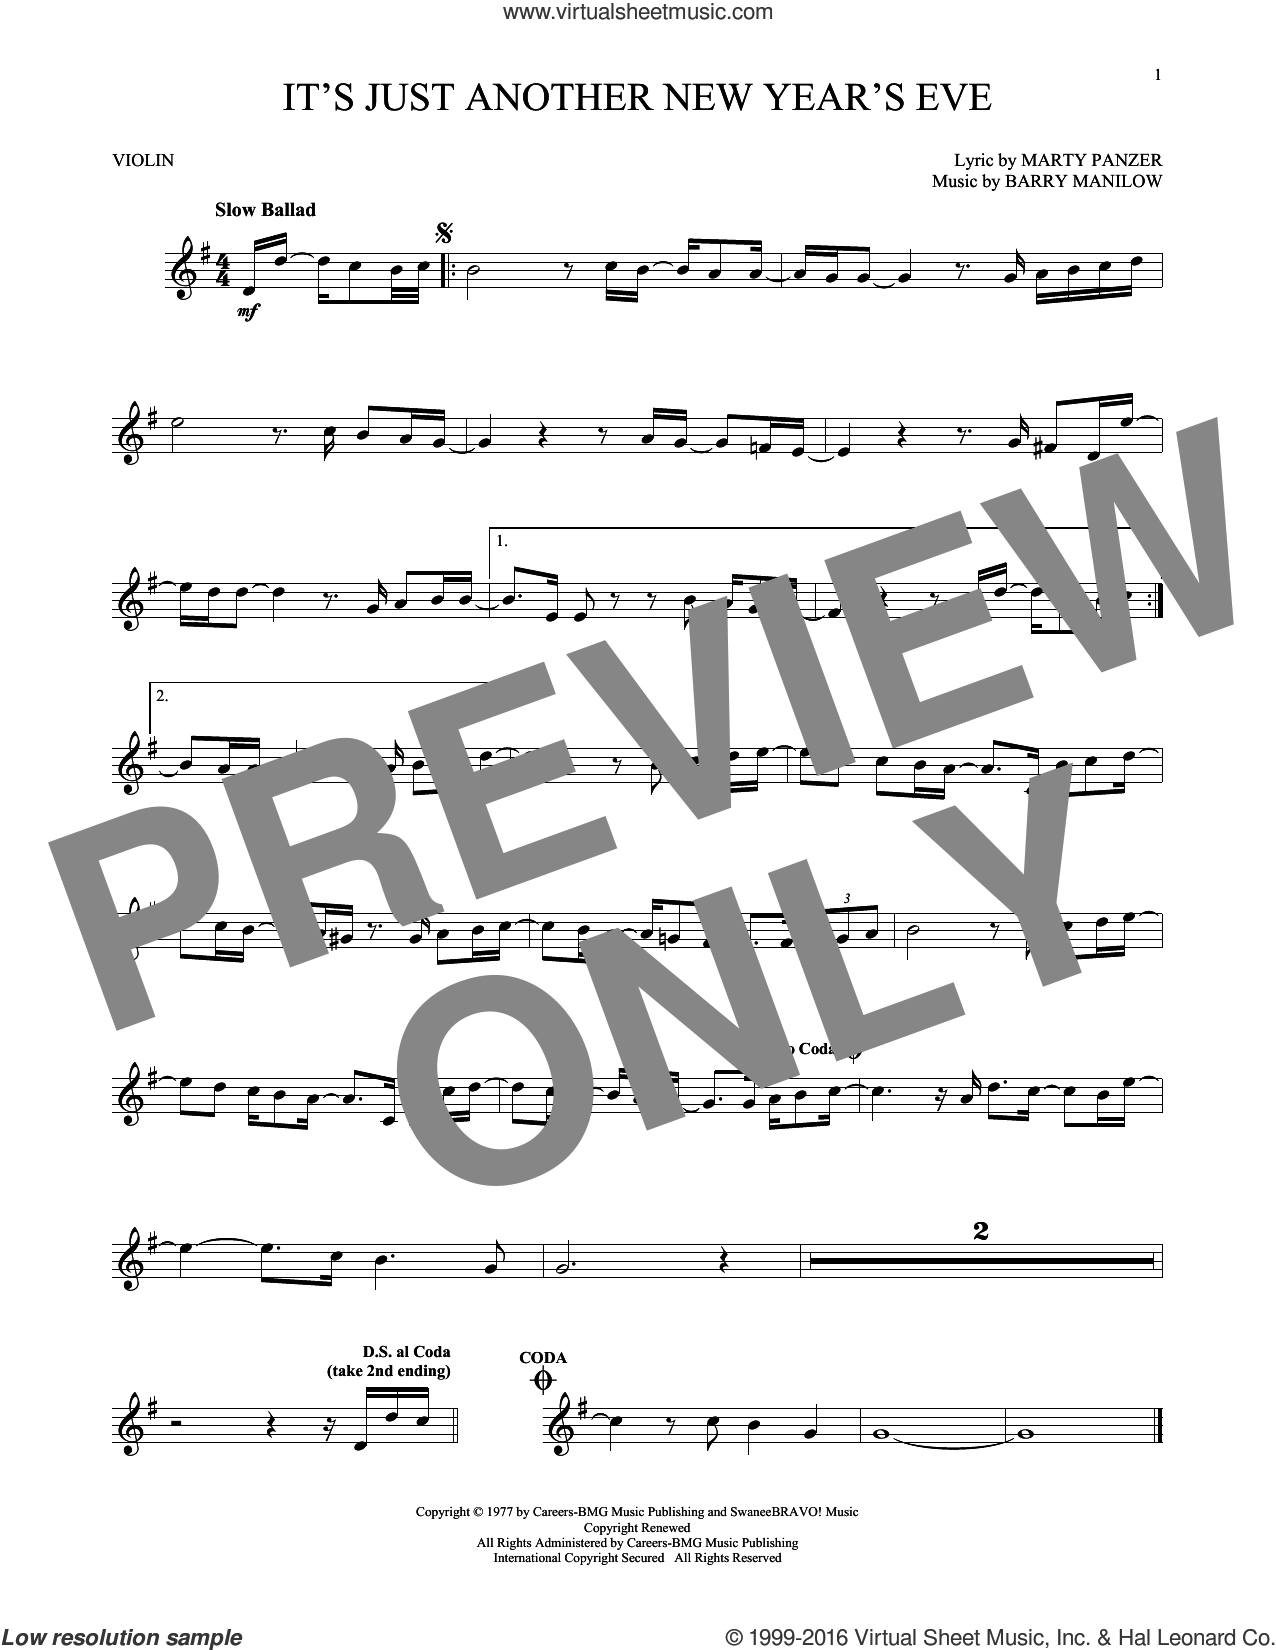 It's Just Another New Year's Eve sheet music for violin solo by Barry Manilow and Marty Panzer, intermediate skill level